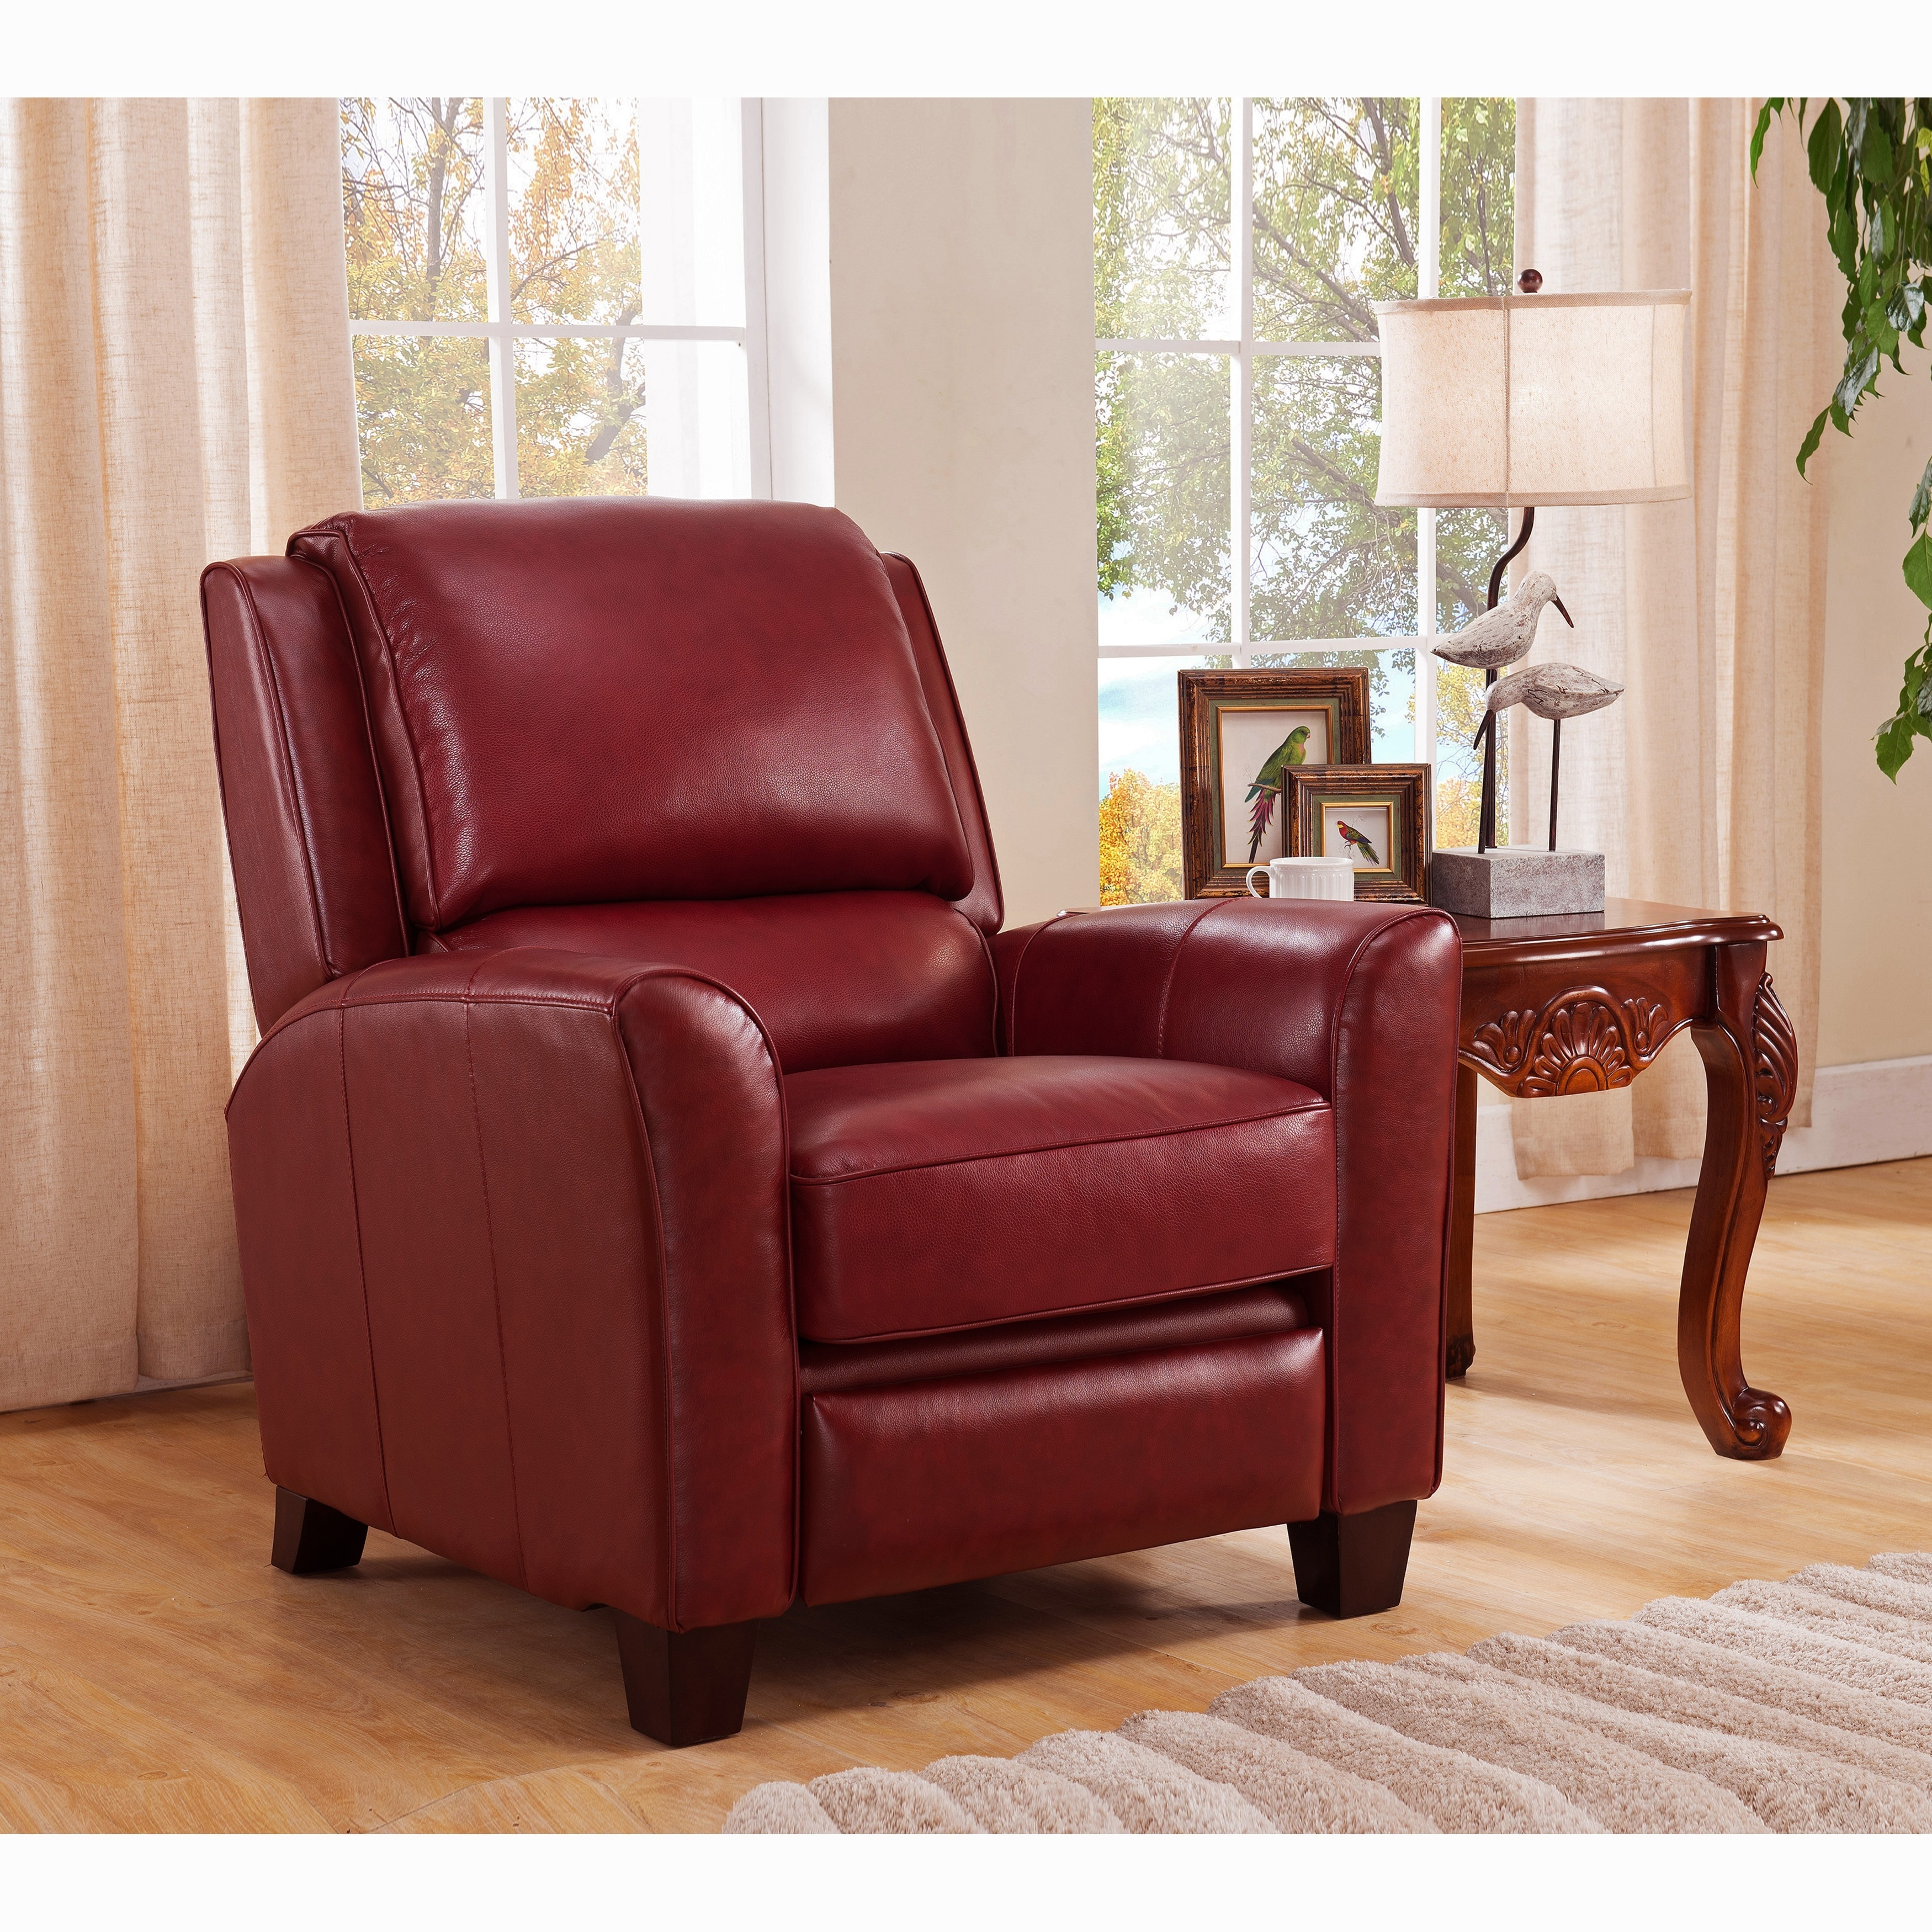 bnd to kenny wayfair brand manual name default go leather chairs recliner sofas rooms